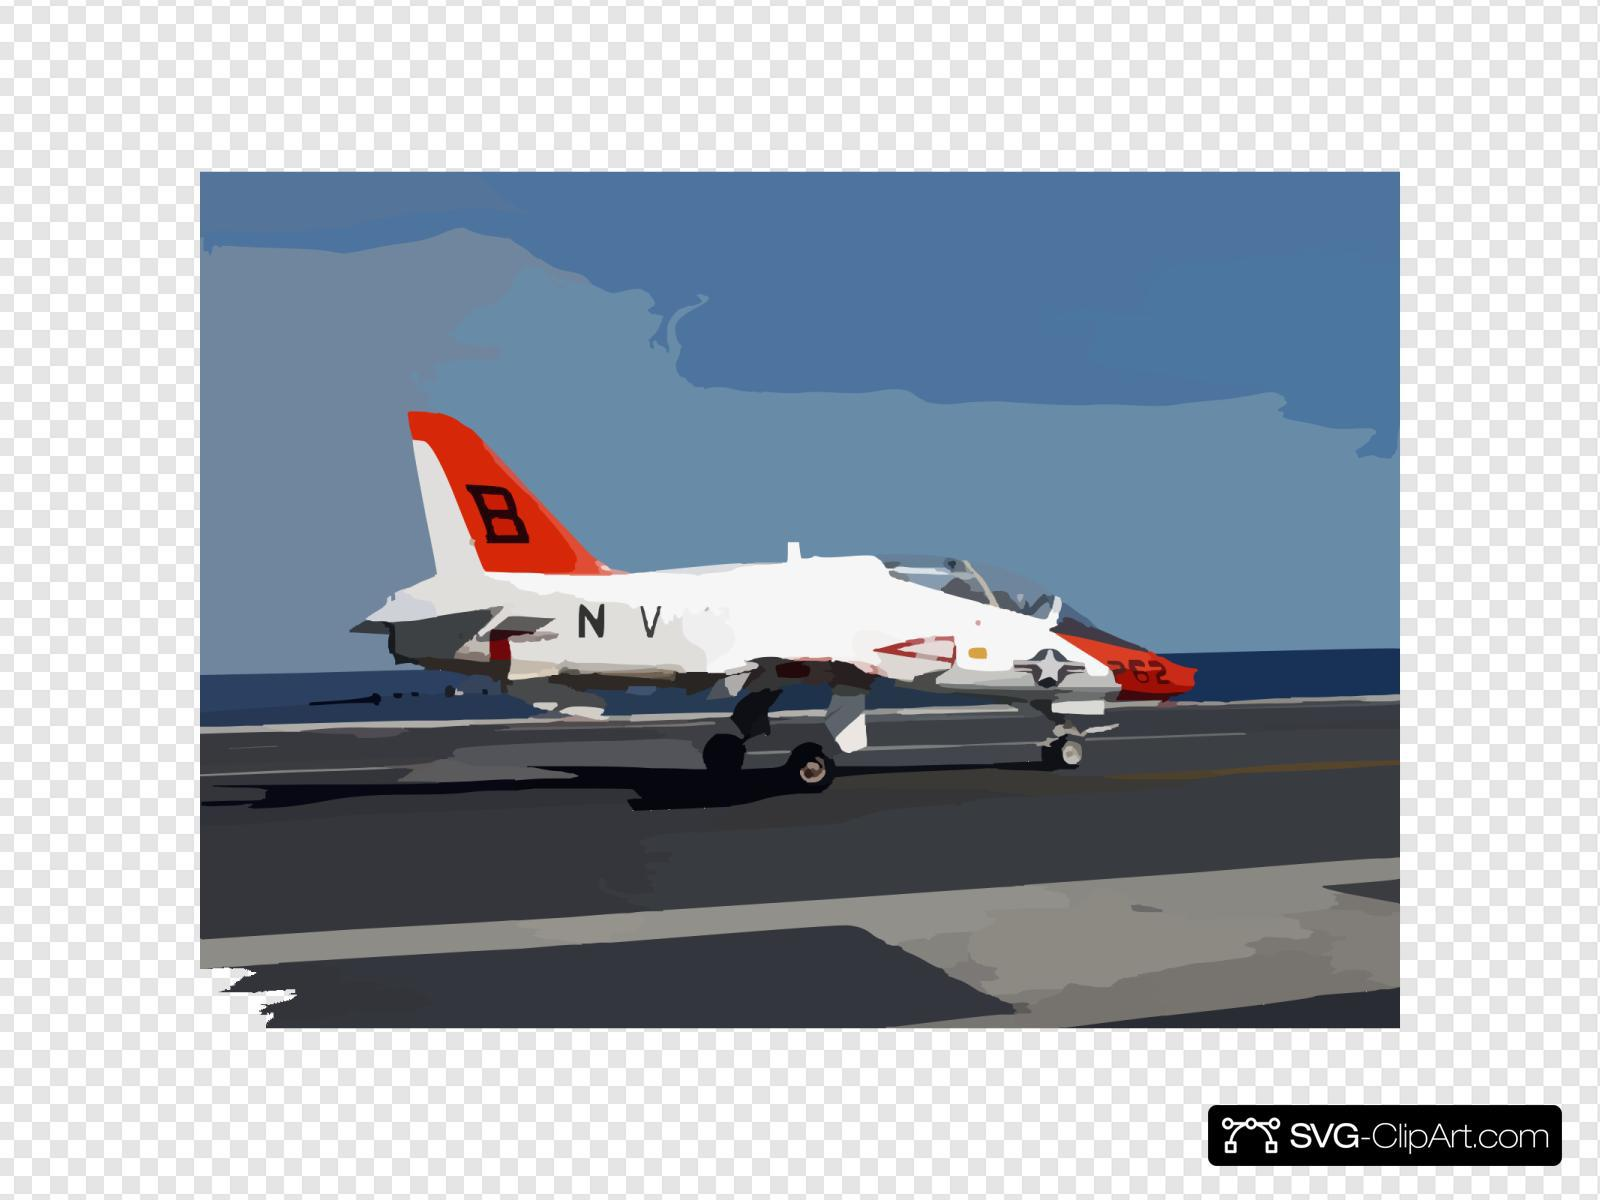 A T-45c Goshawk Assigned To Training Air Wing Two Maneuvers The Ship S Flight Deck Following And Arrested Landing Aboard Uss Harry S. Truman (cvn 75).